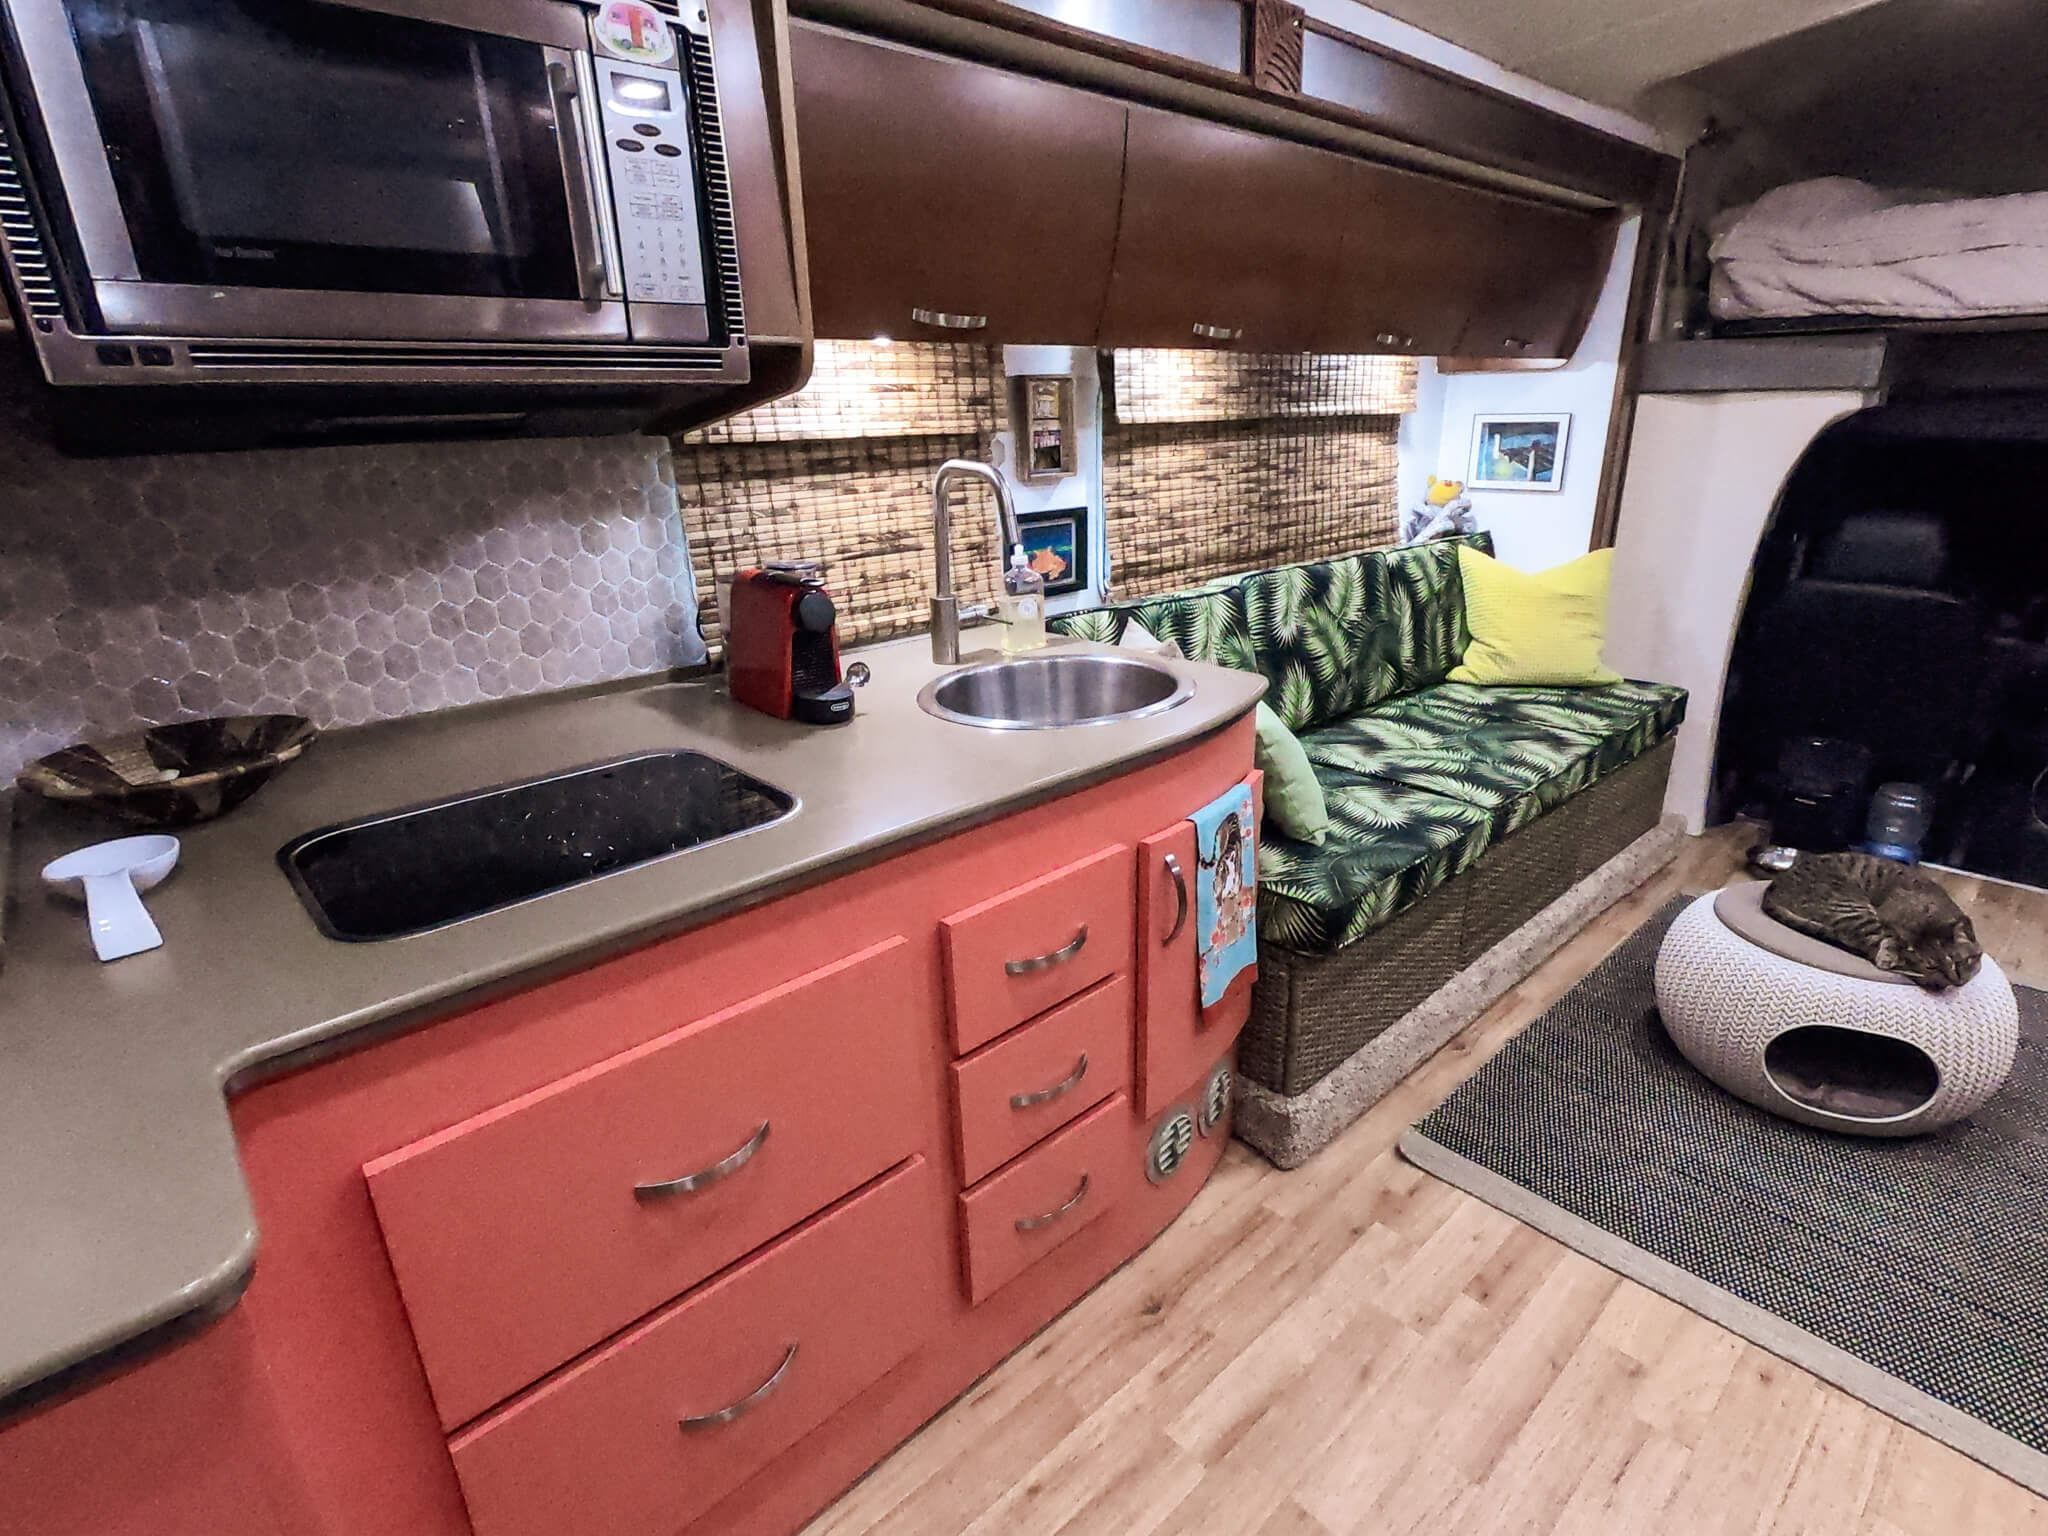 RV Kitchen and couch area RV remodel